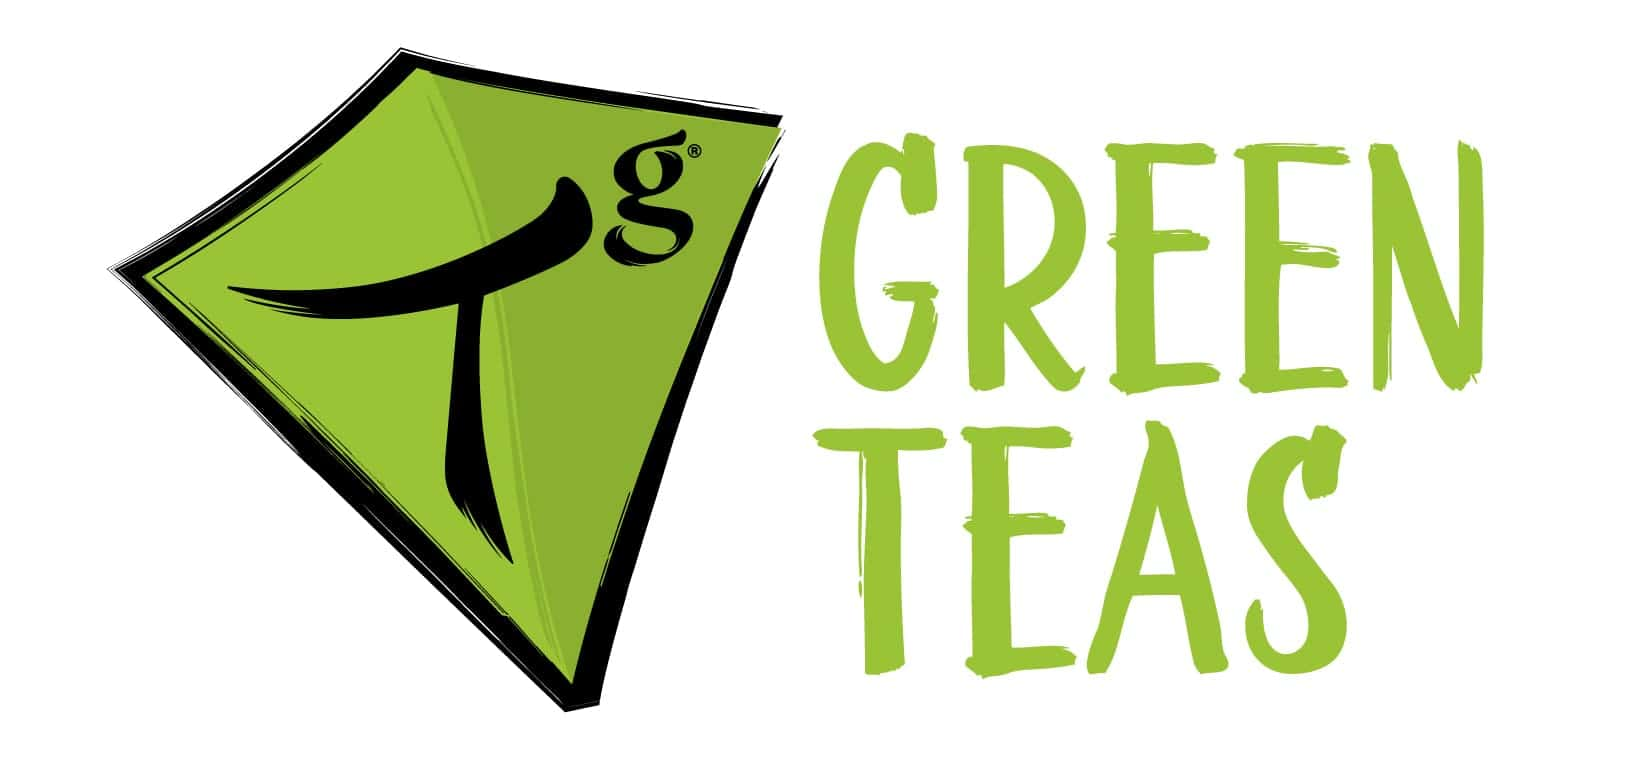 LOGO horizontal Tg green tea